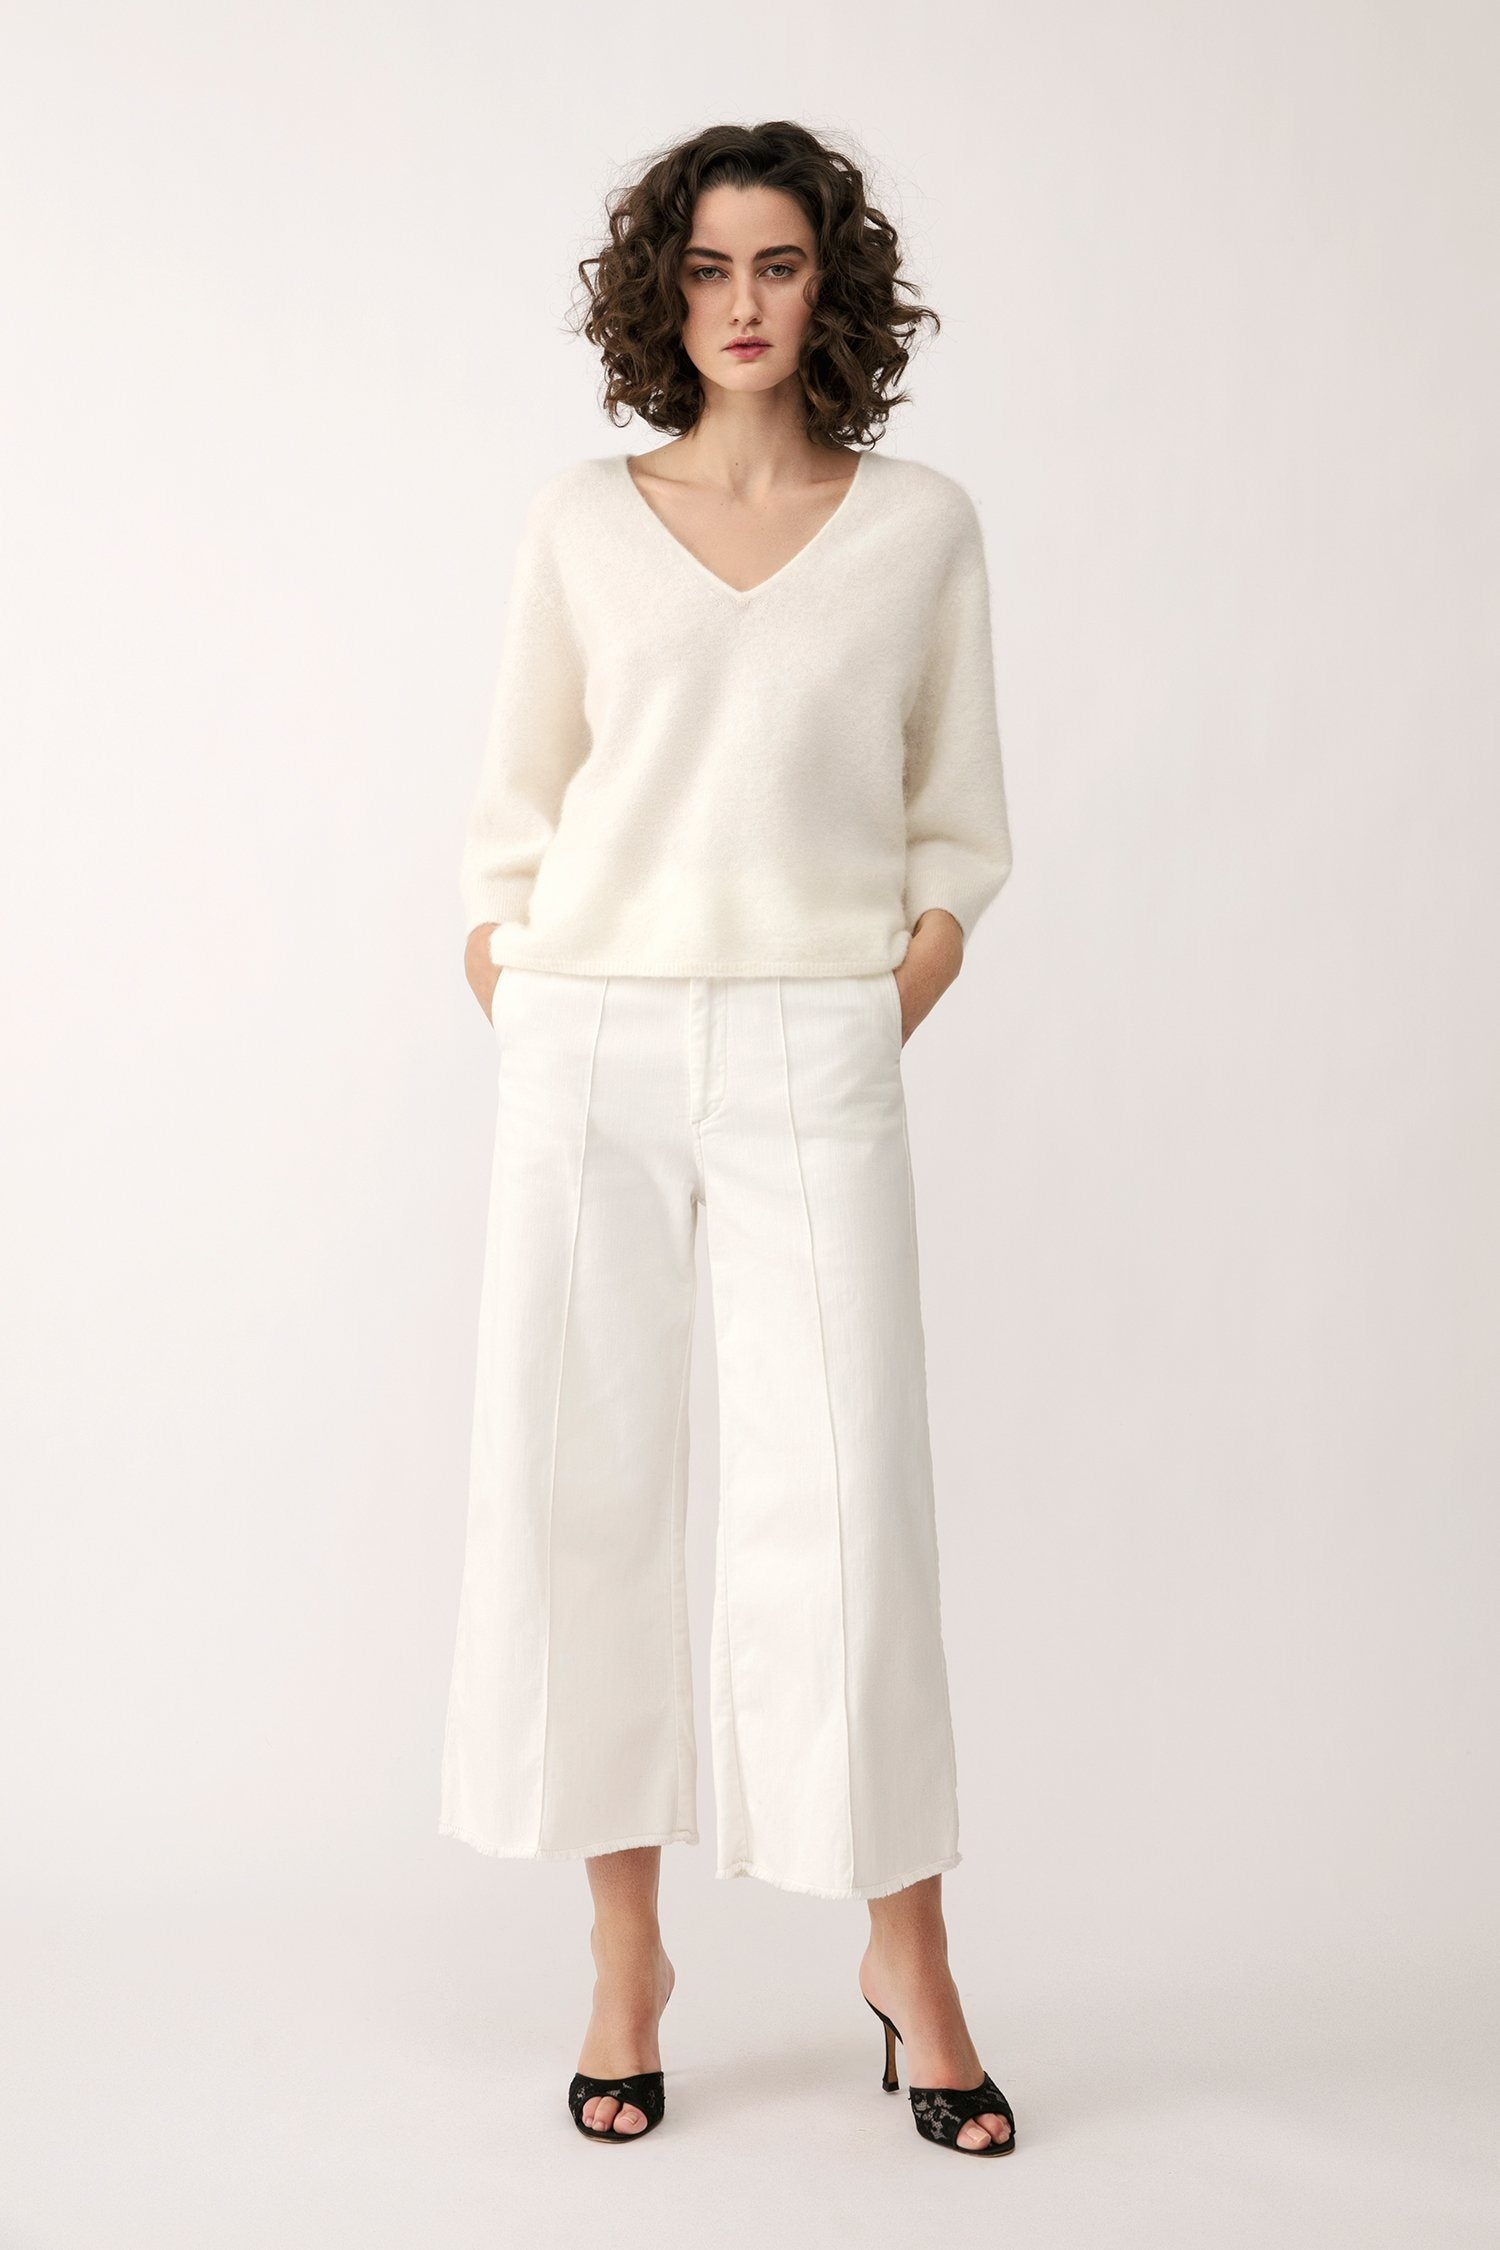 ENNA SWEATER - WHITE Sweater Stylein